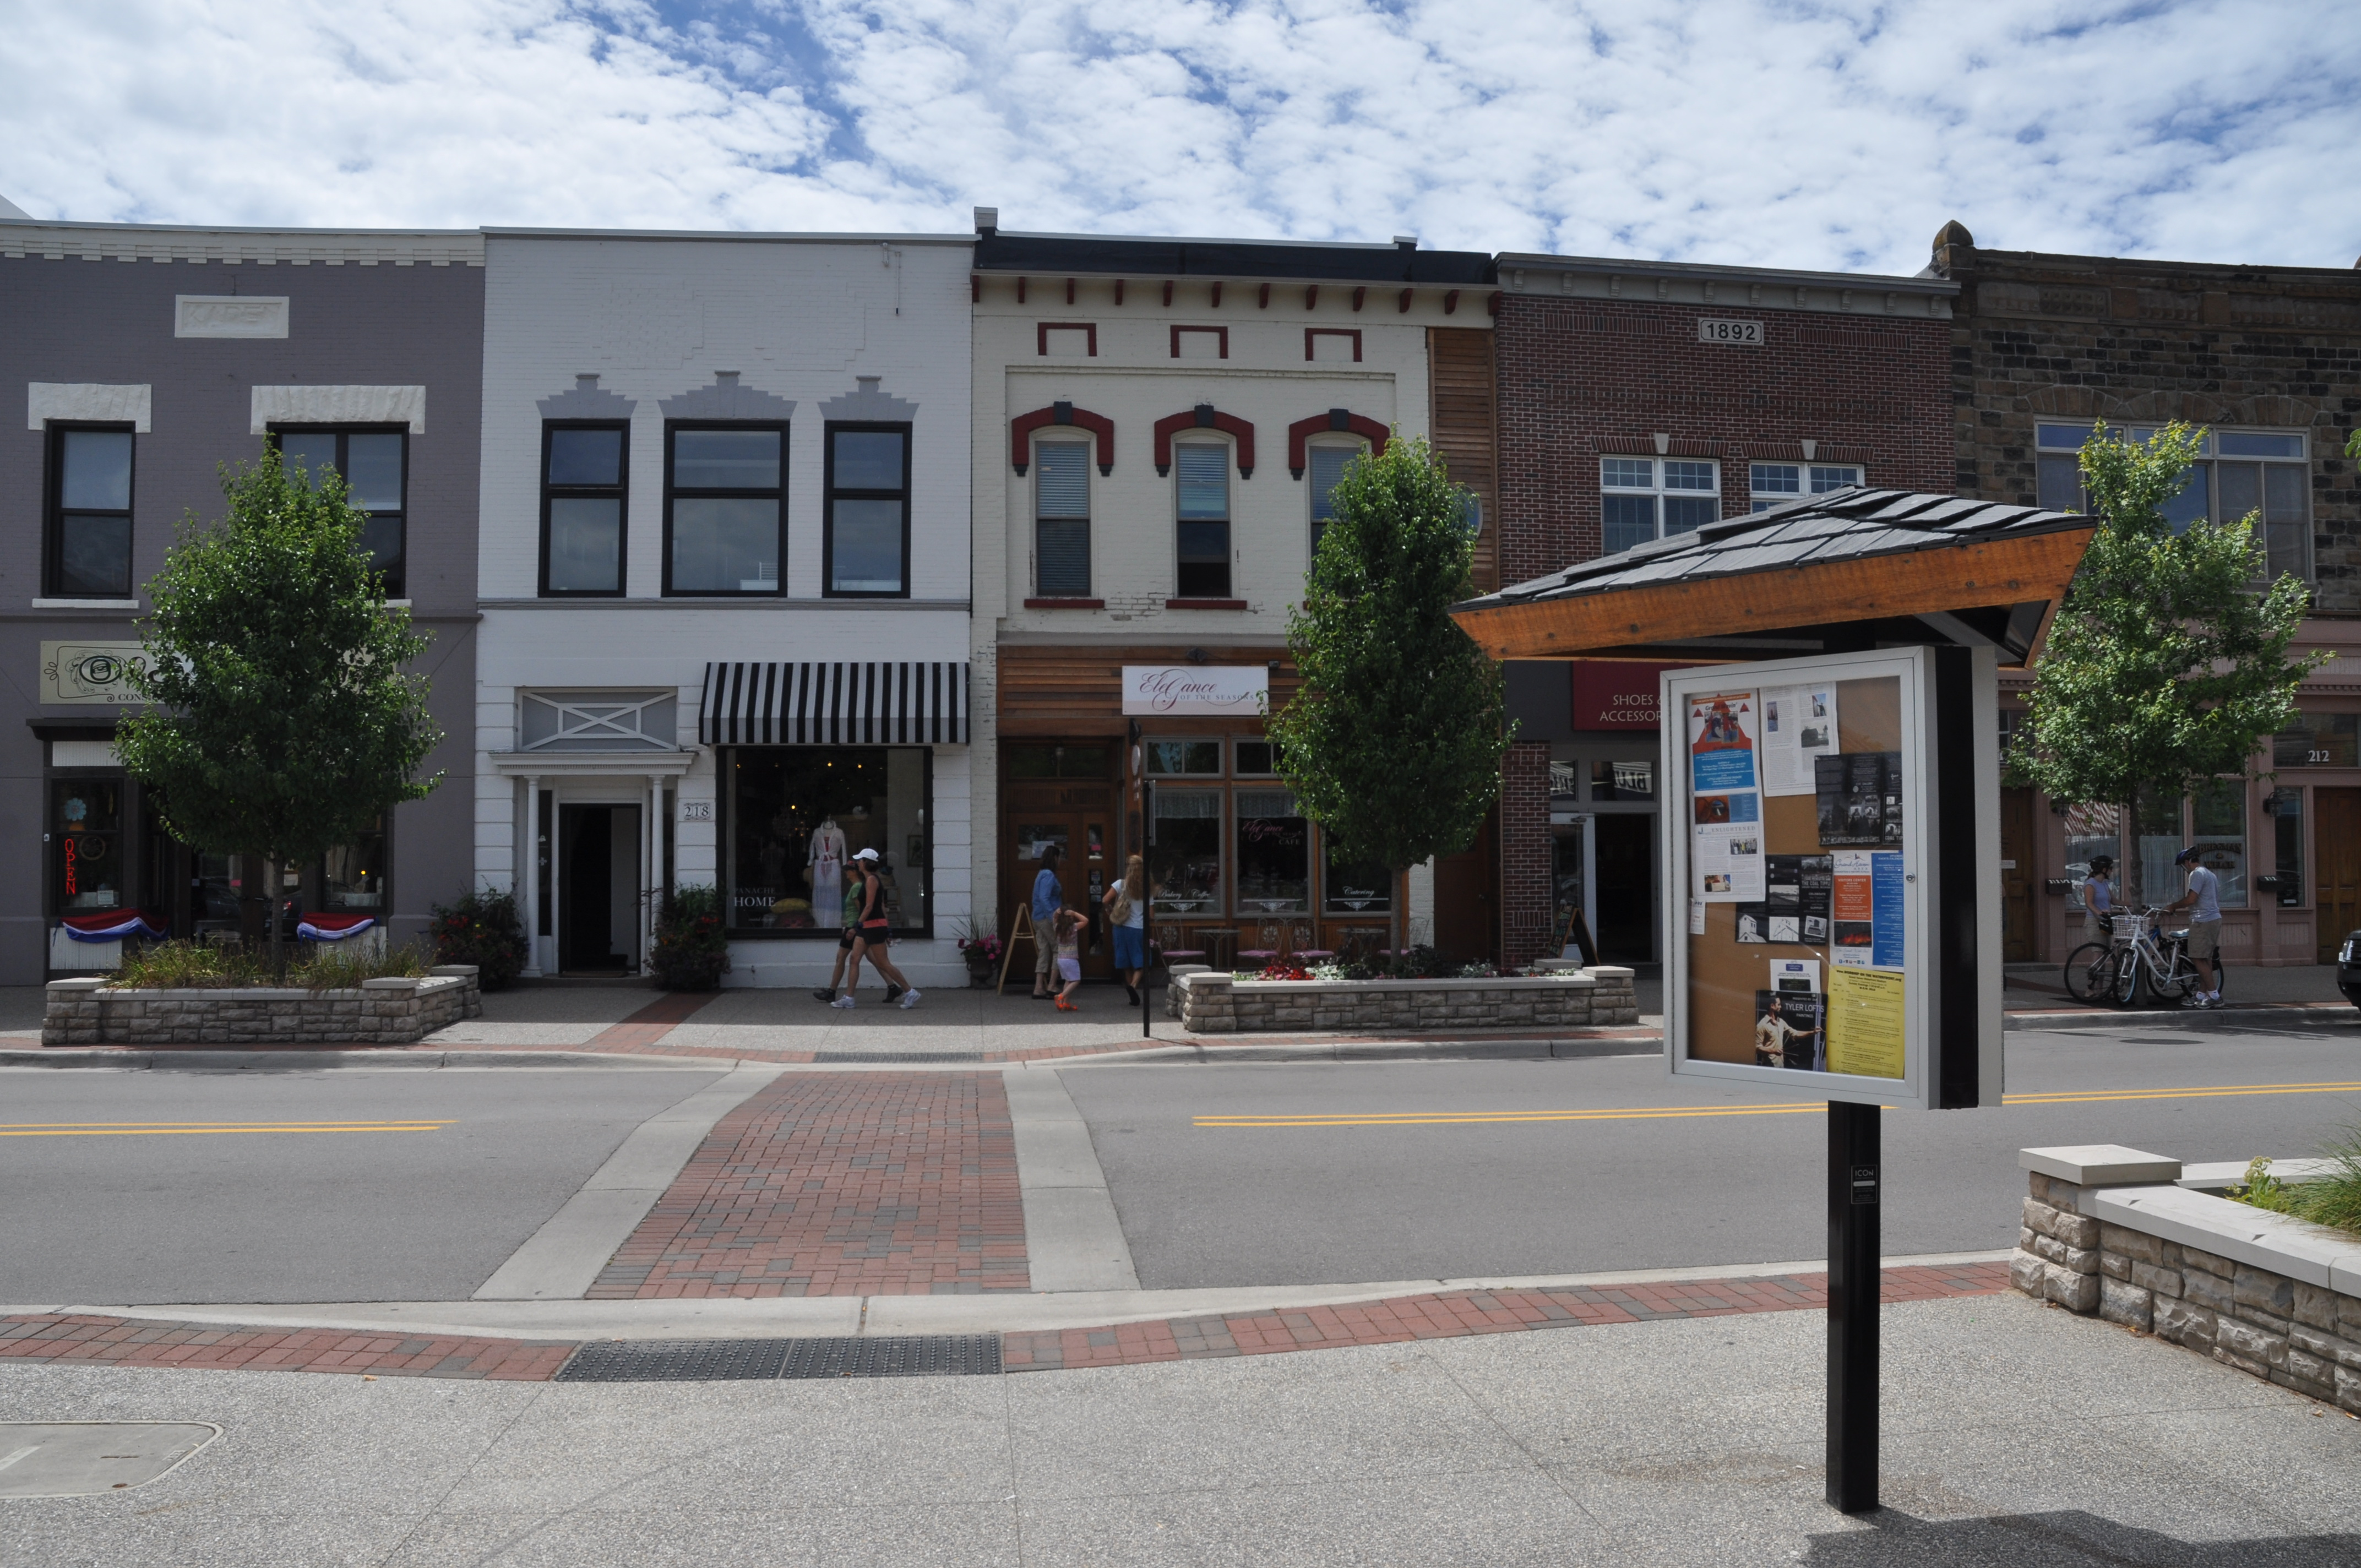 Downtown Grand Haven Michigan Pictures To Pin On Pinterest